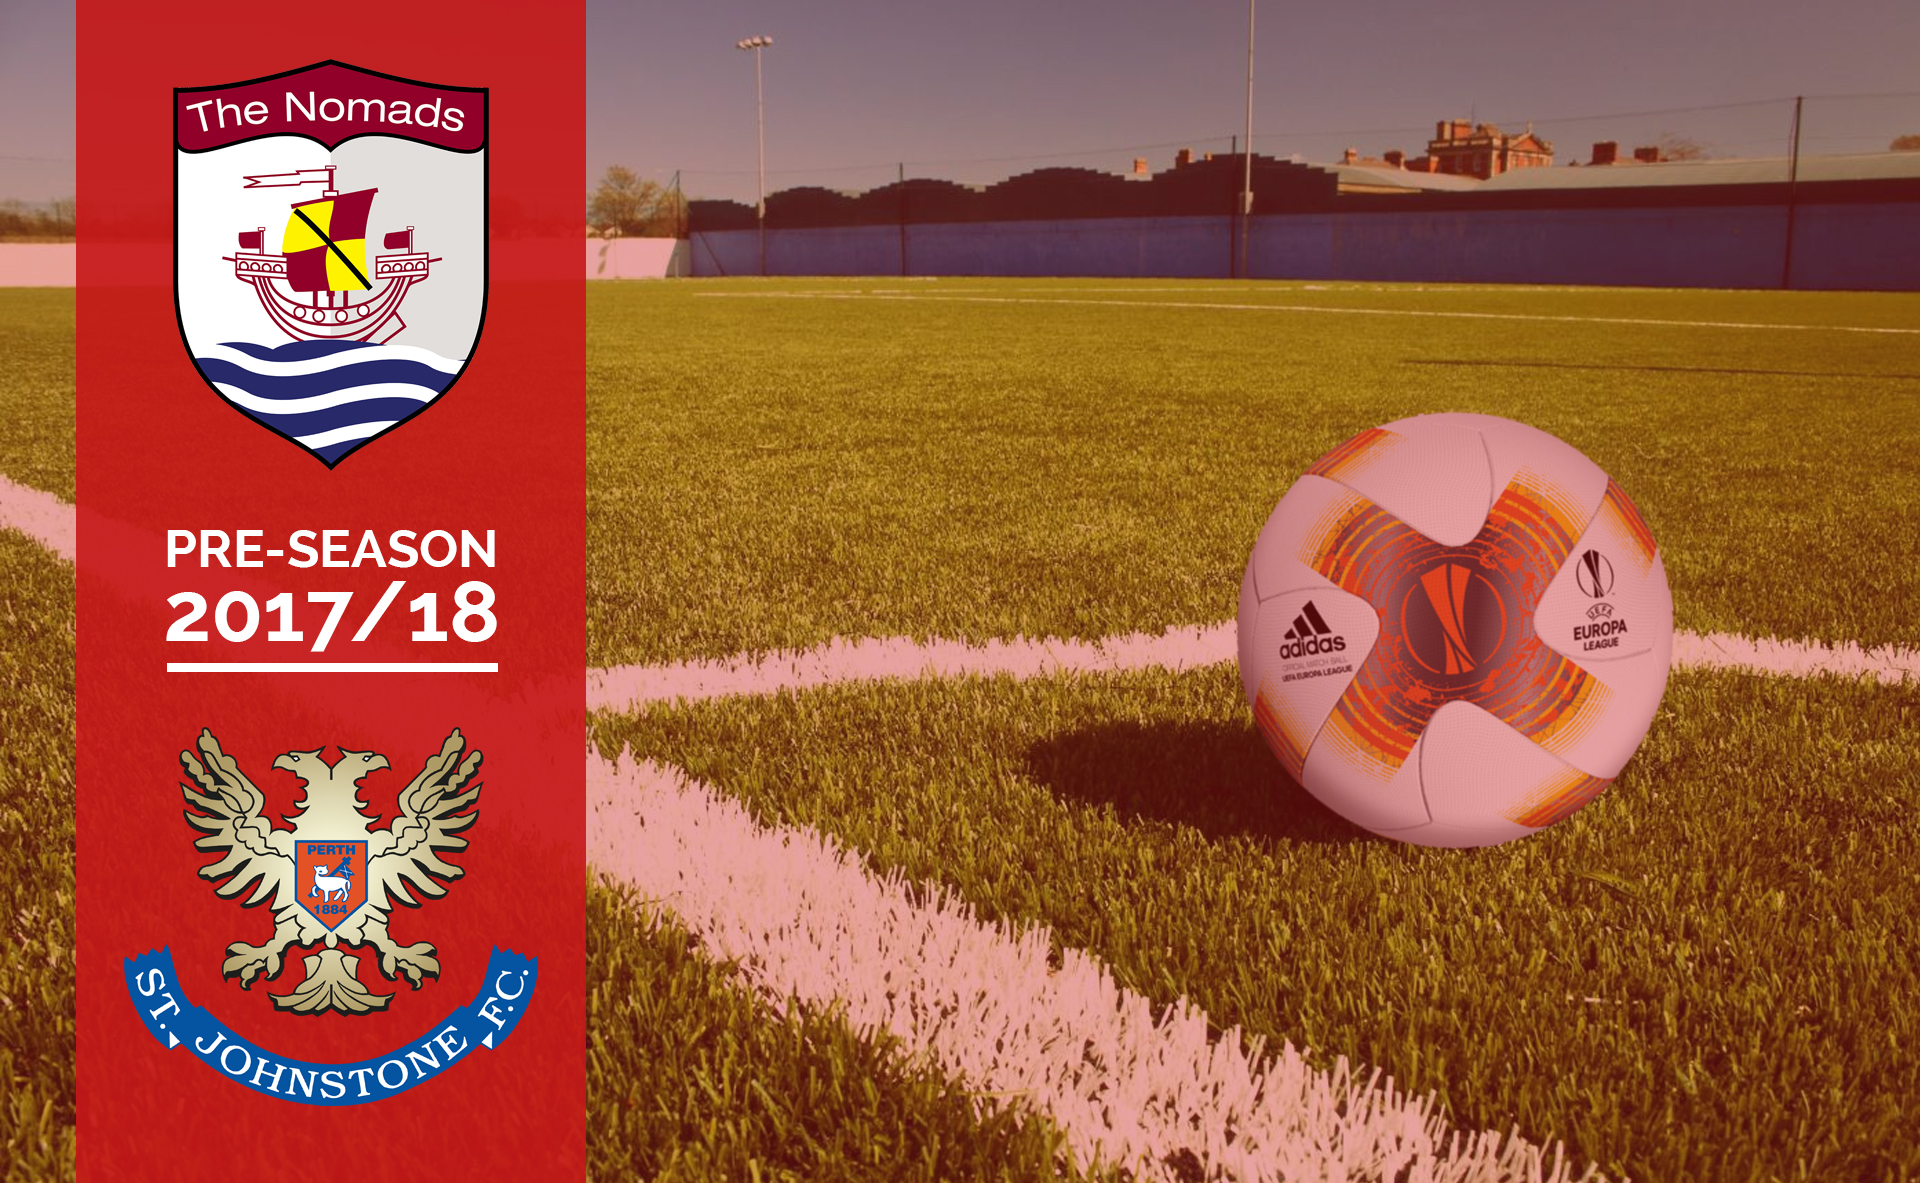 Connah's Quay Nomads will face Scottish Premier League side, St Johnstone on Saturday 24th June.